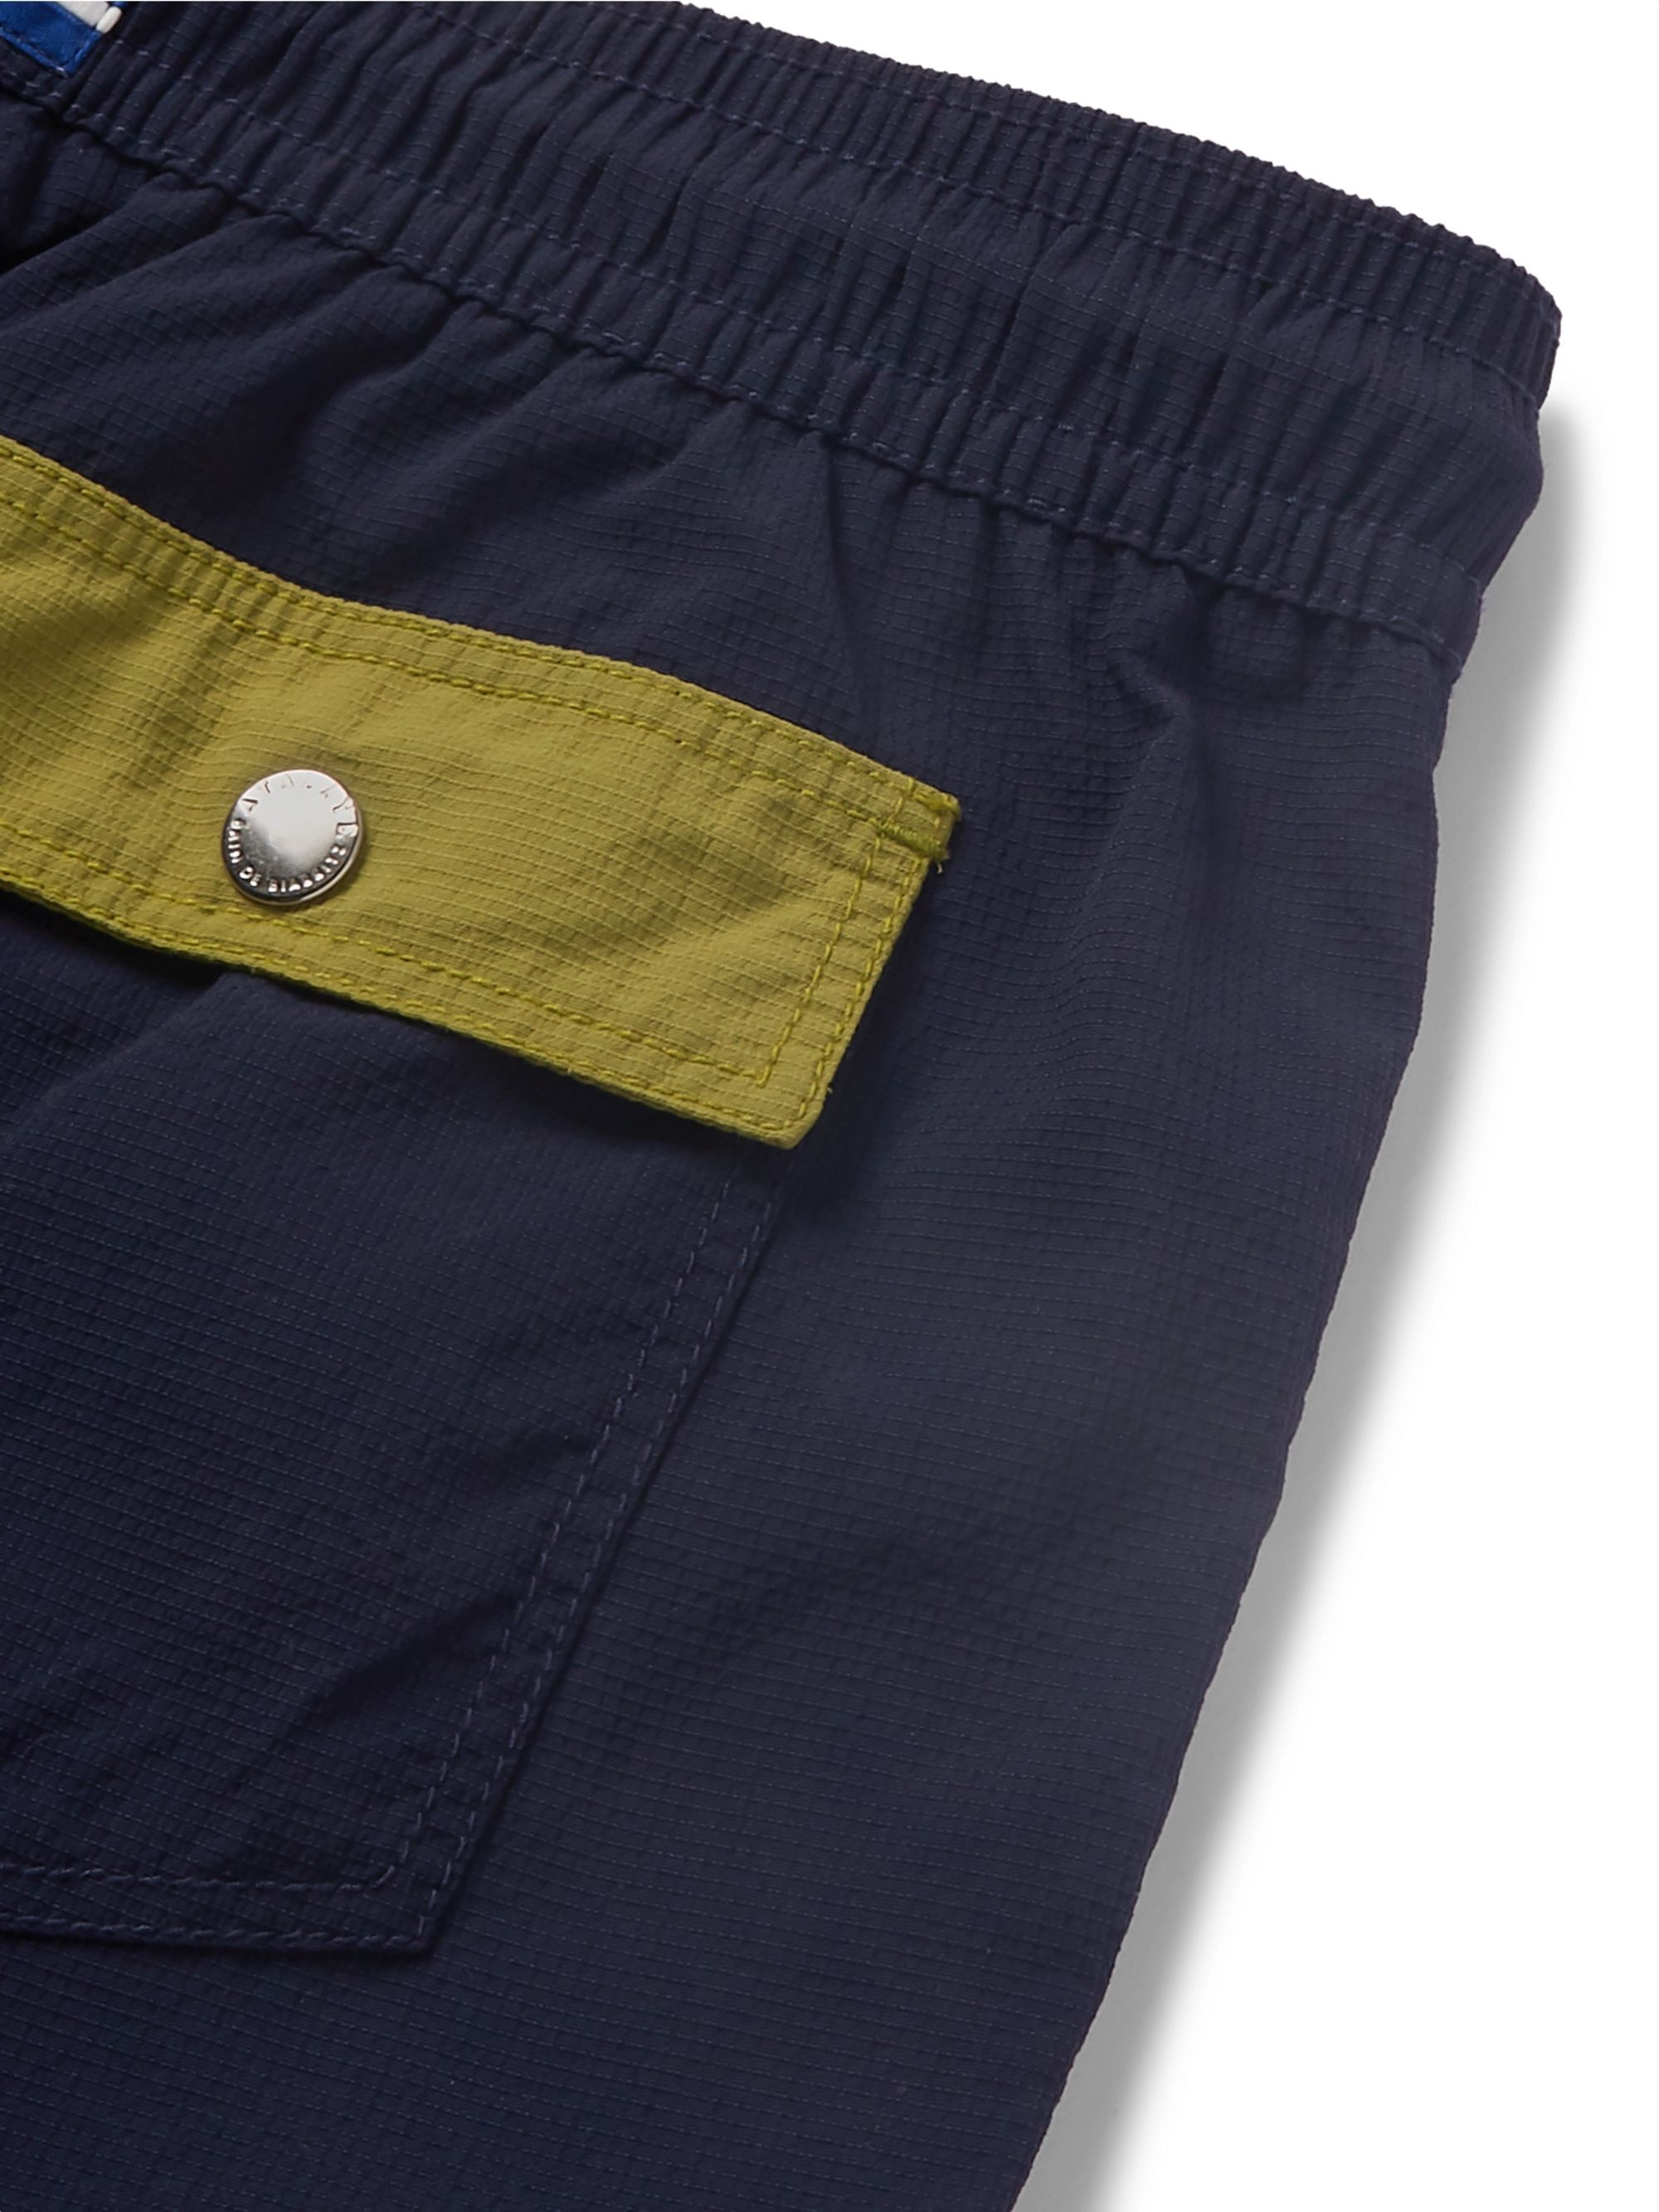 Atalaye Fregate Short-Length Swim Shorts